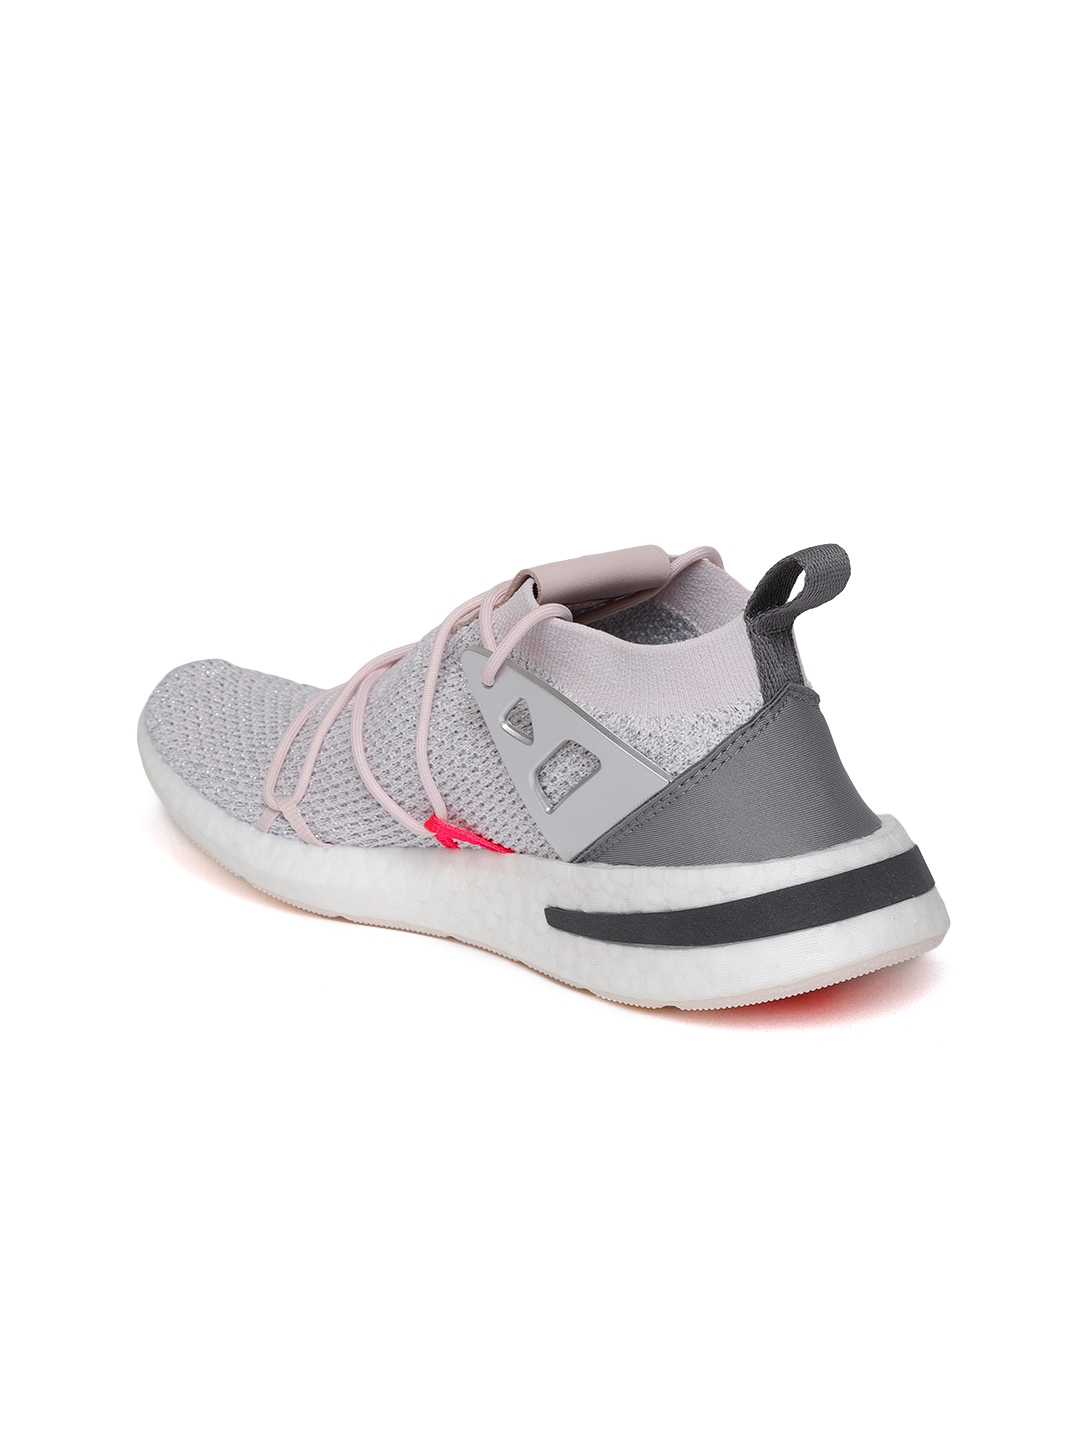 separation shoes 4d5ea 7512f ADIDAS Originals Women Off-White   Grey ARKYN PK Sneakers